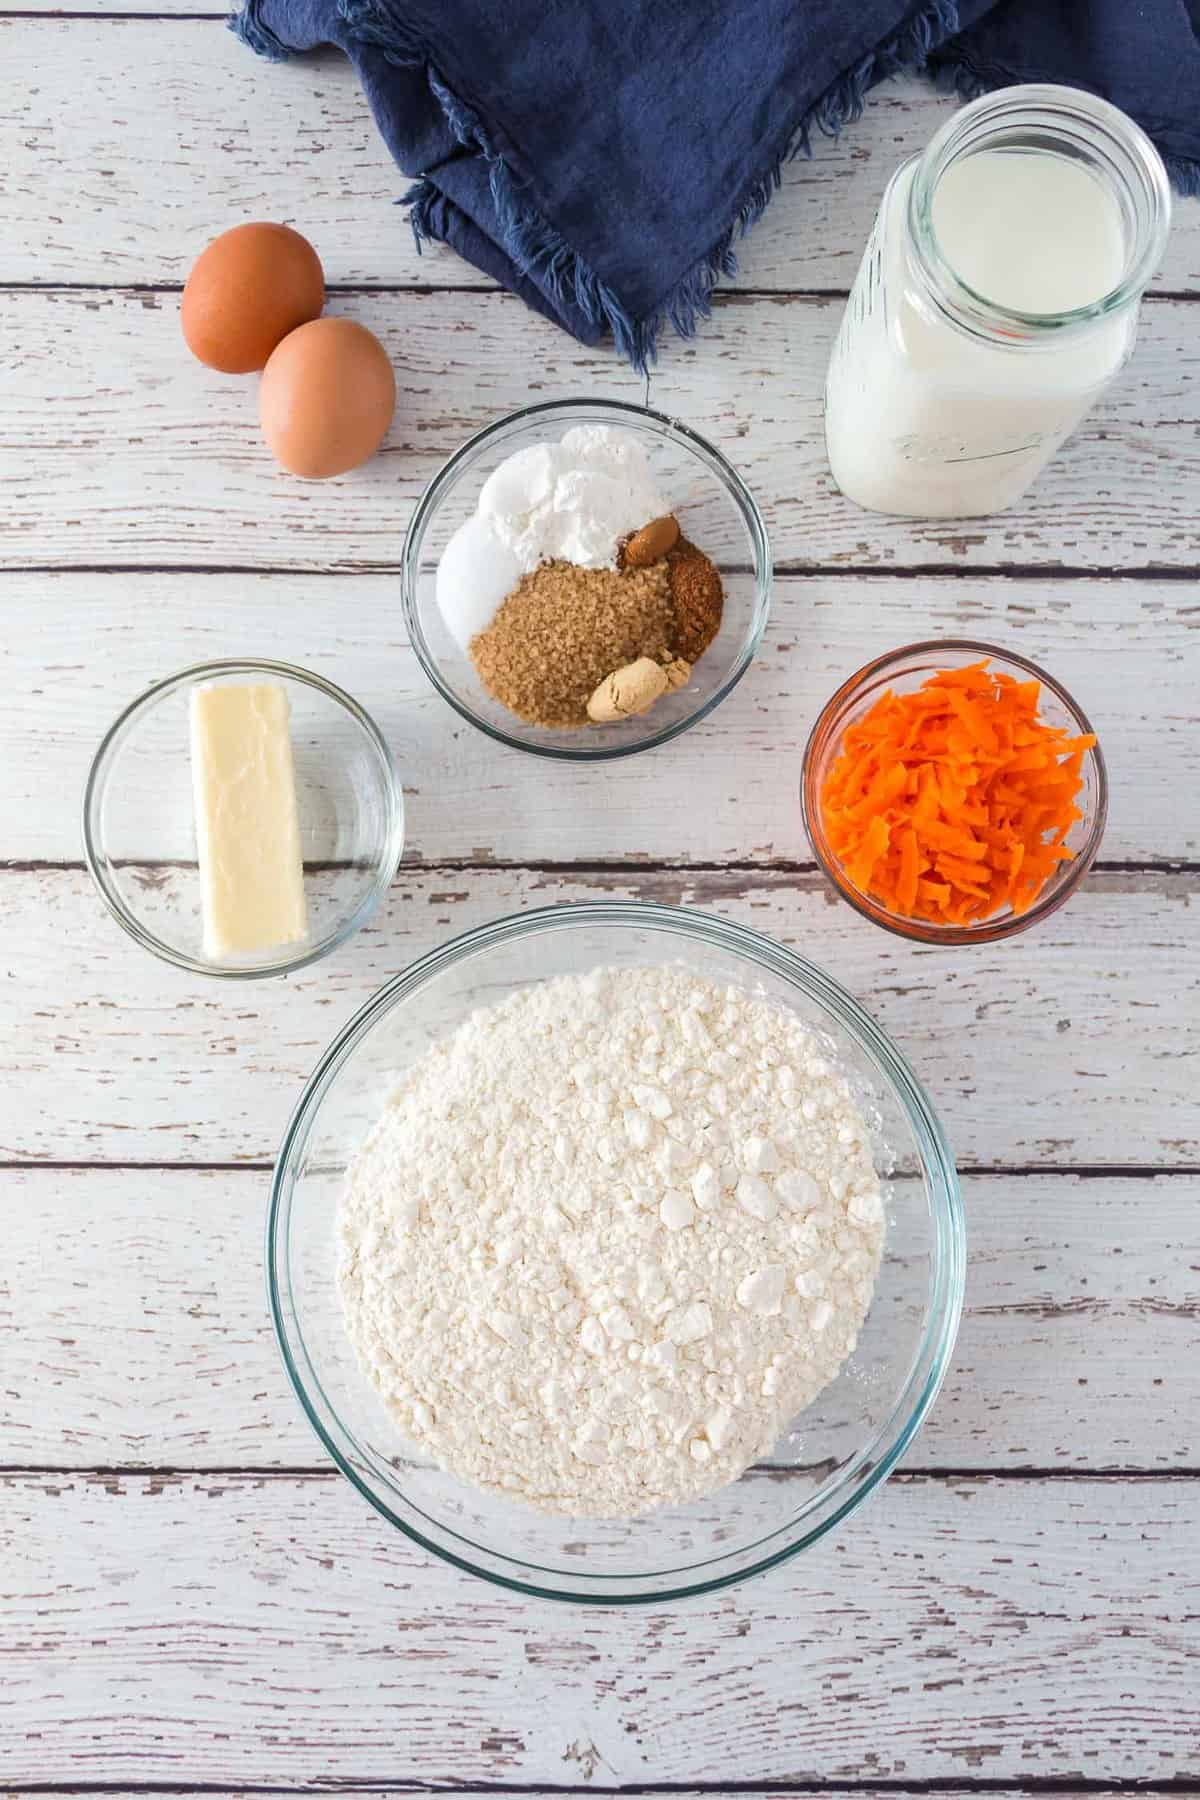 Overhead view of ingredients: Flour, carrots, milk, eggs, spices. sugar.